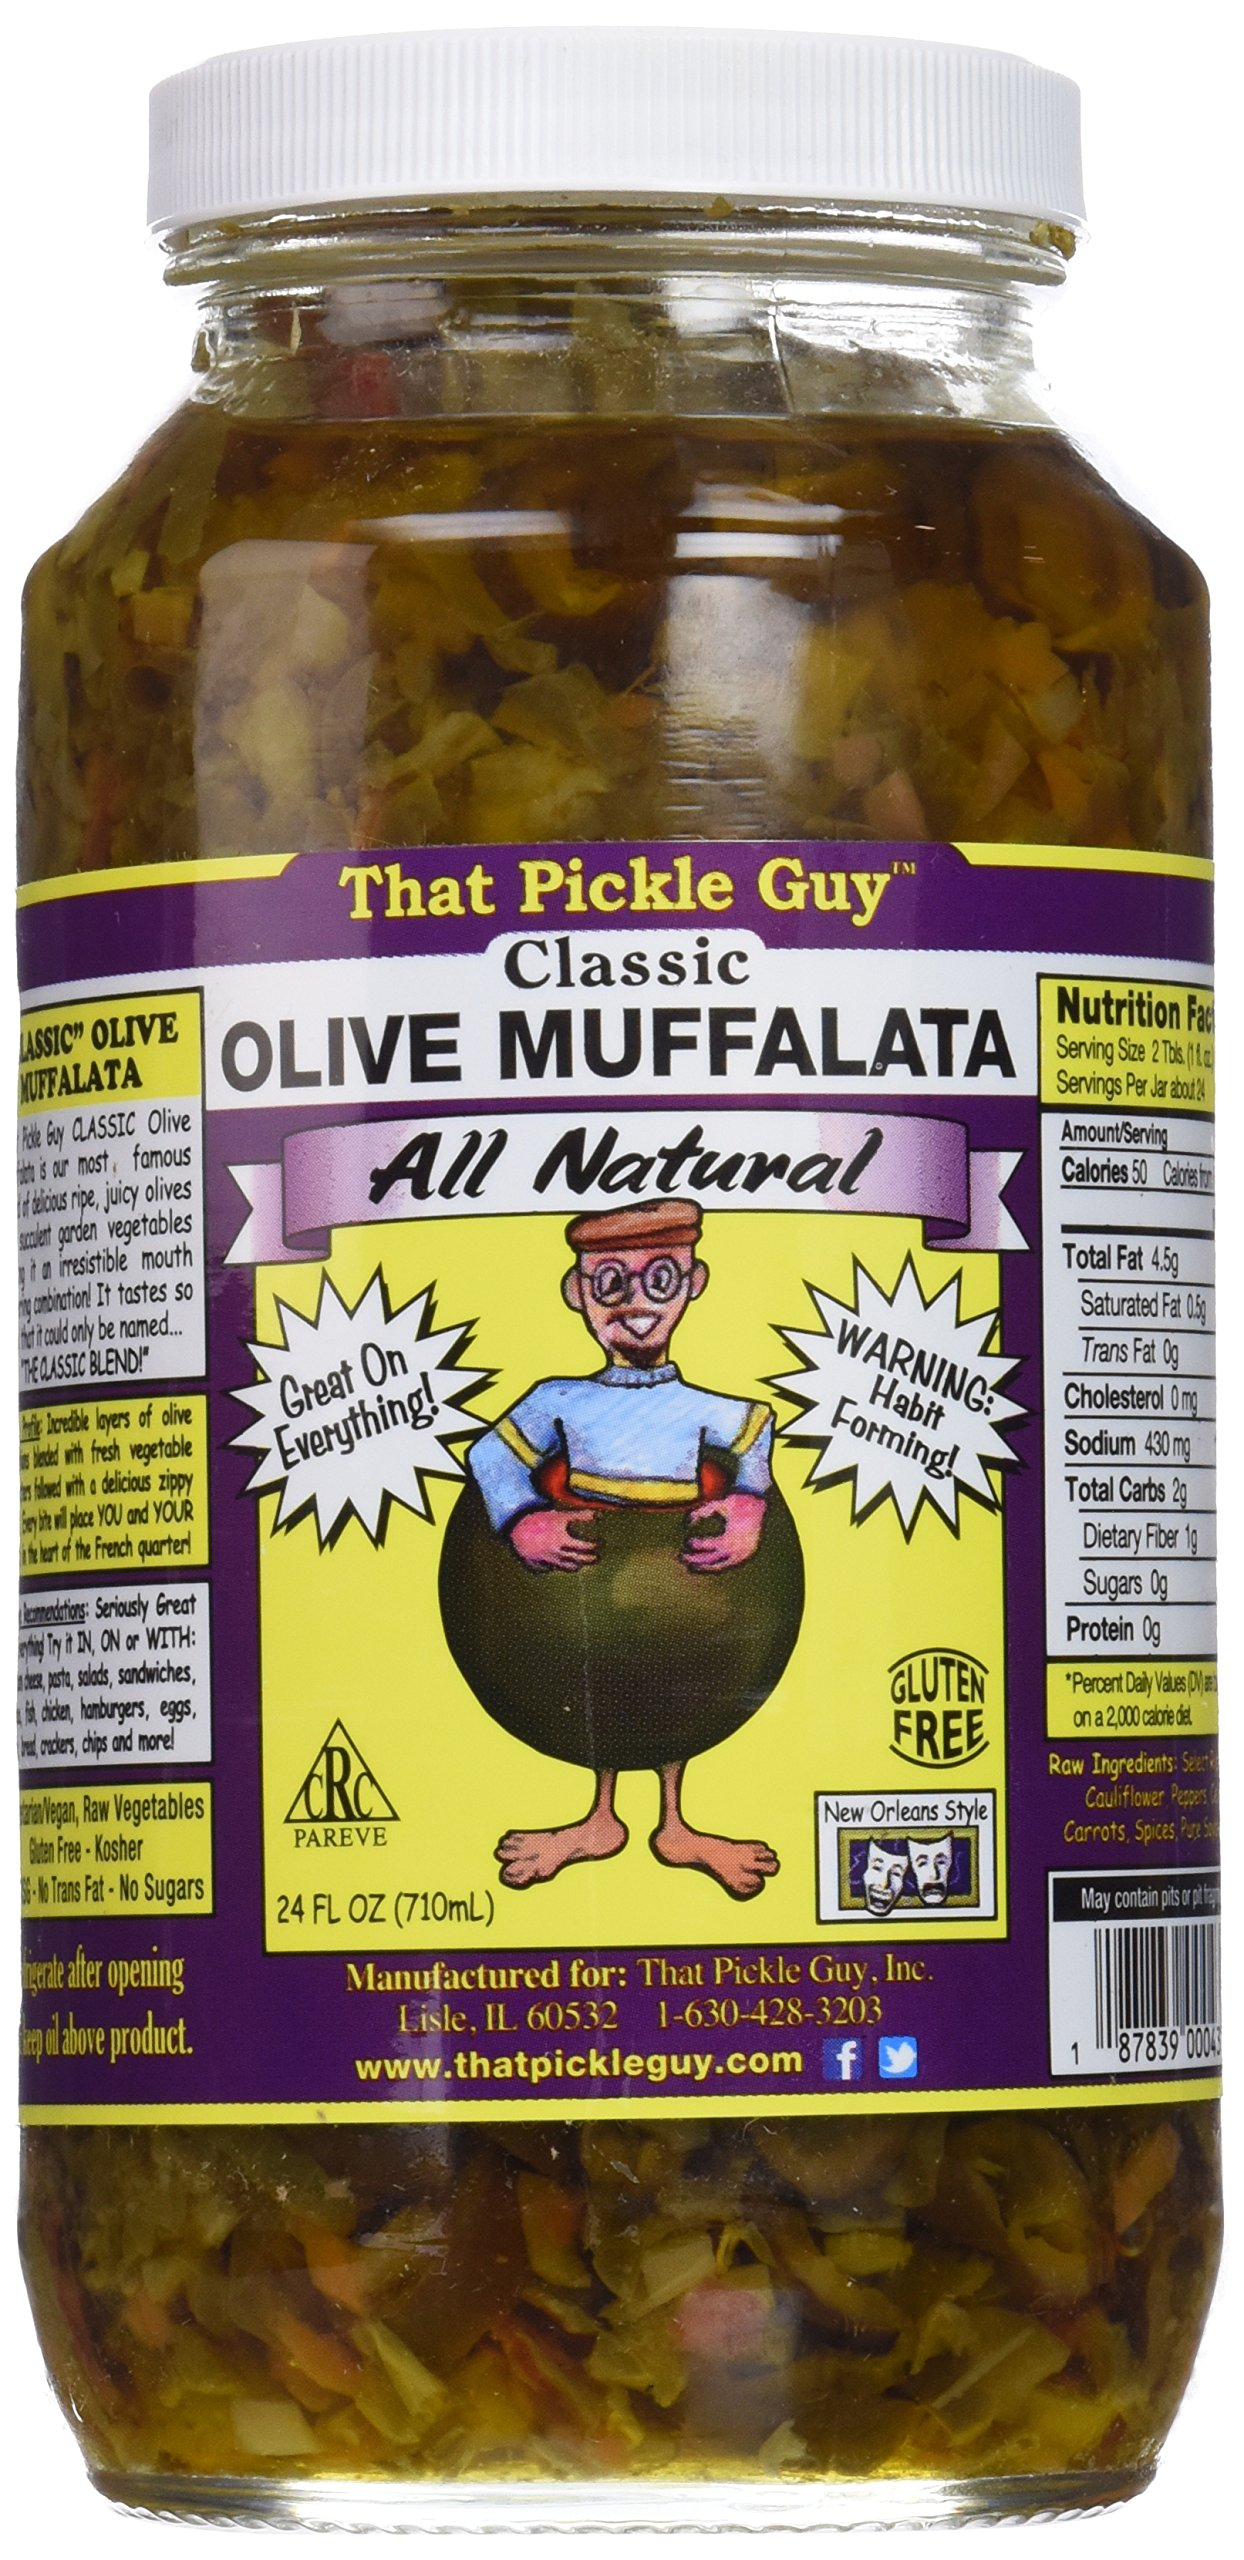 That Pickle Guy New Orleans Style Classic Olive Muffalata, All Natural, 24-ounce